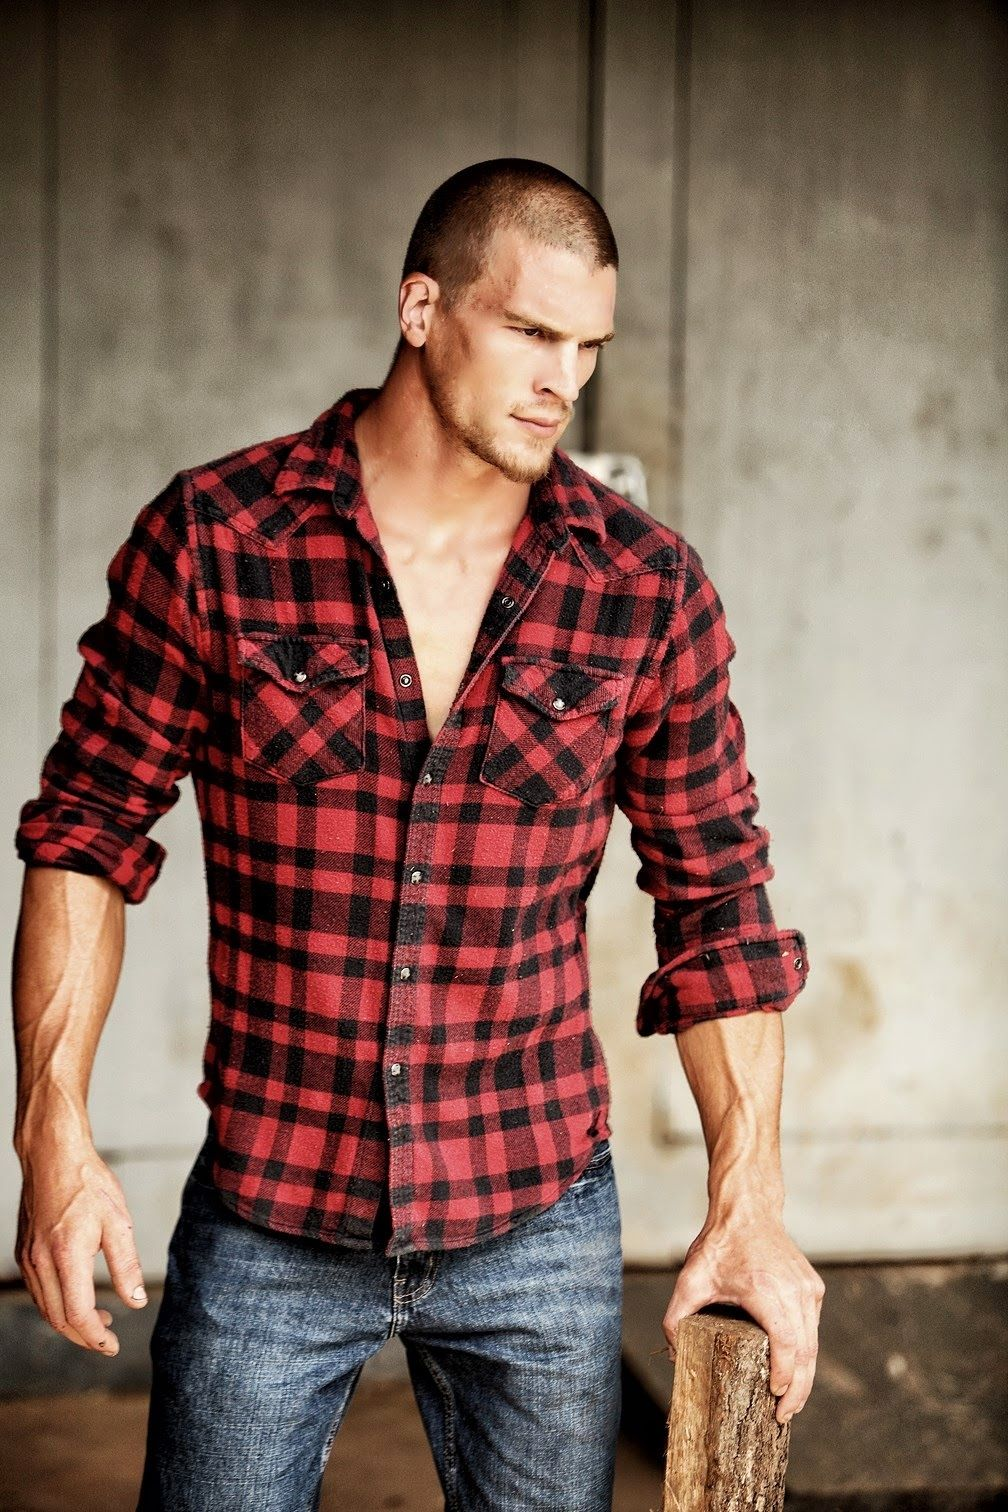 Hard to find pics of manly men like this, but I think he might work for Bear....